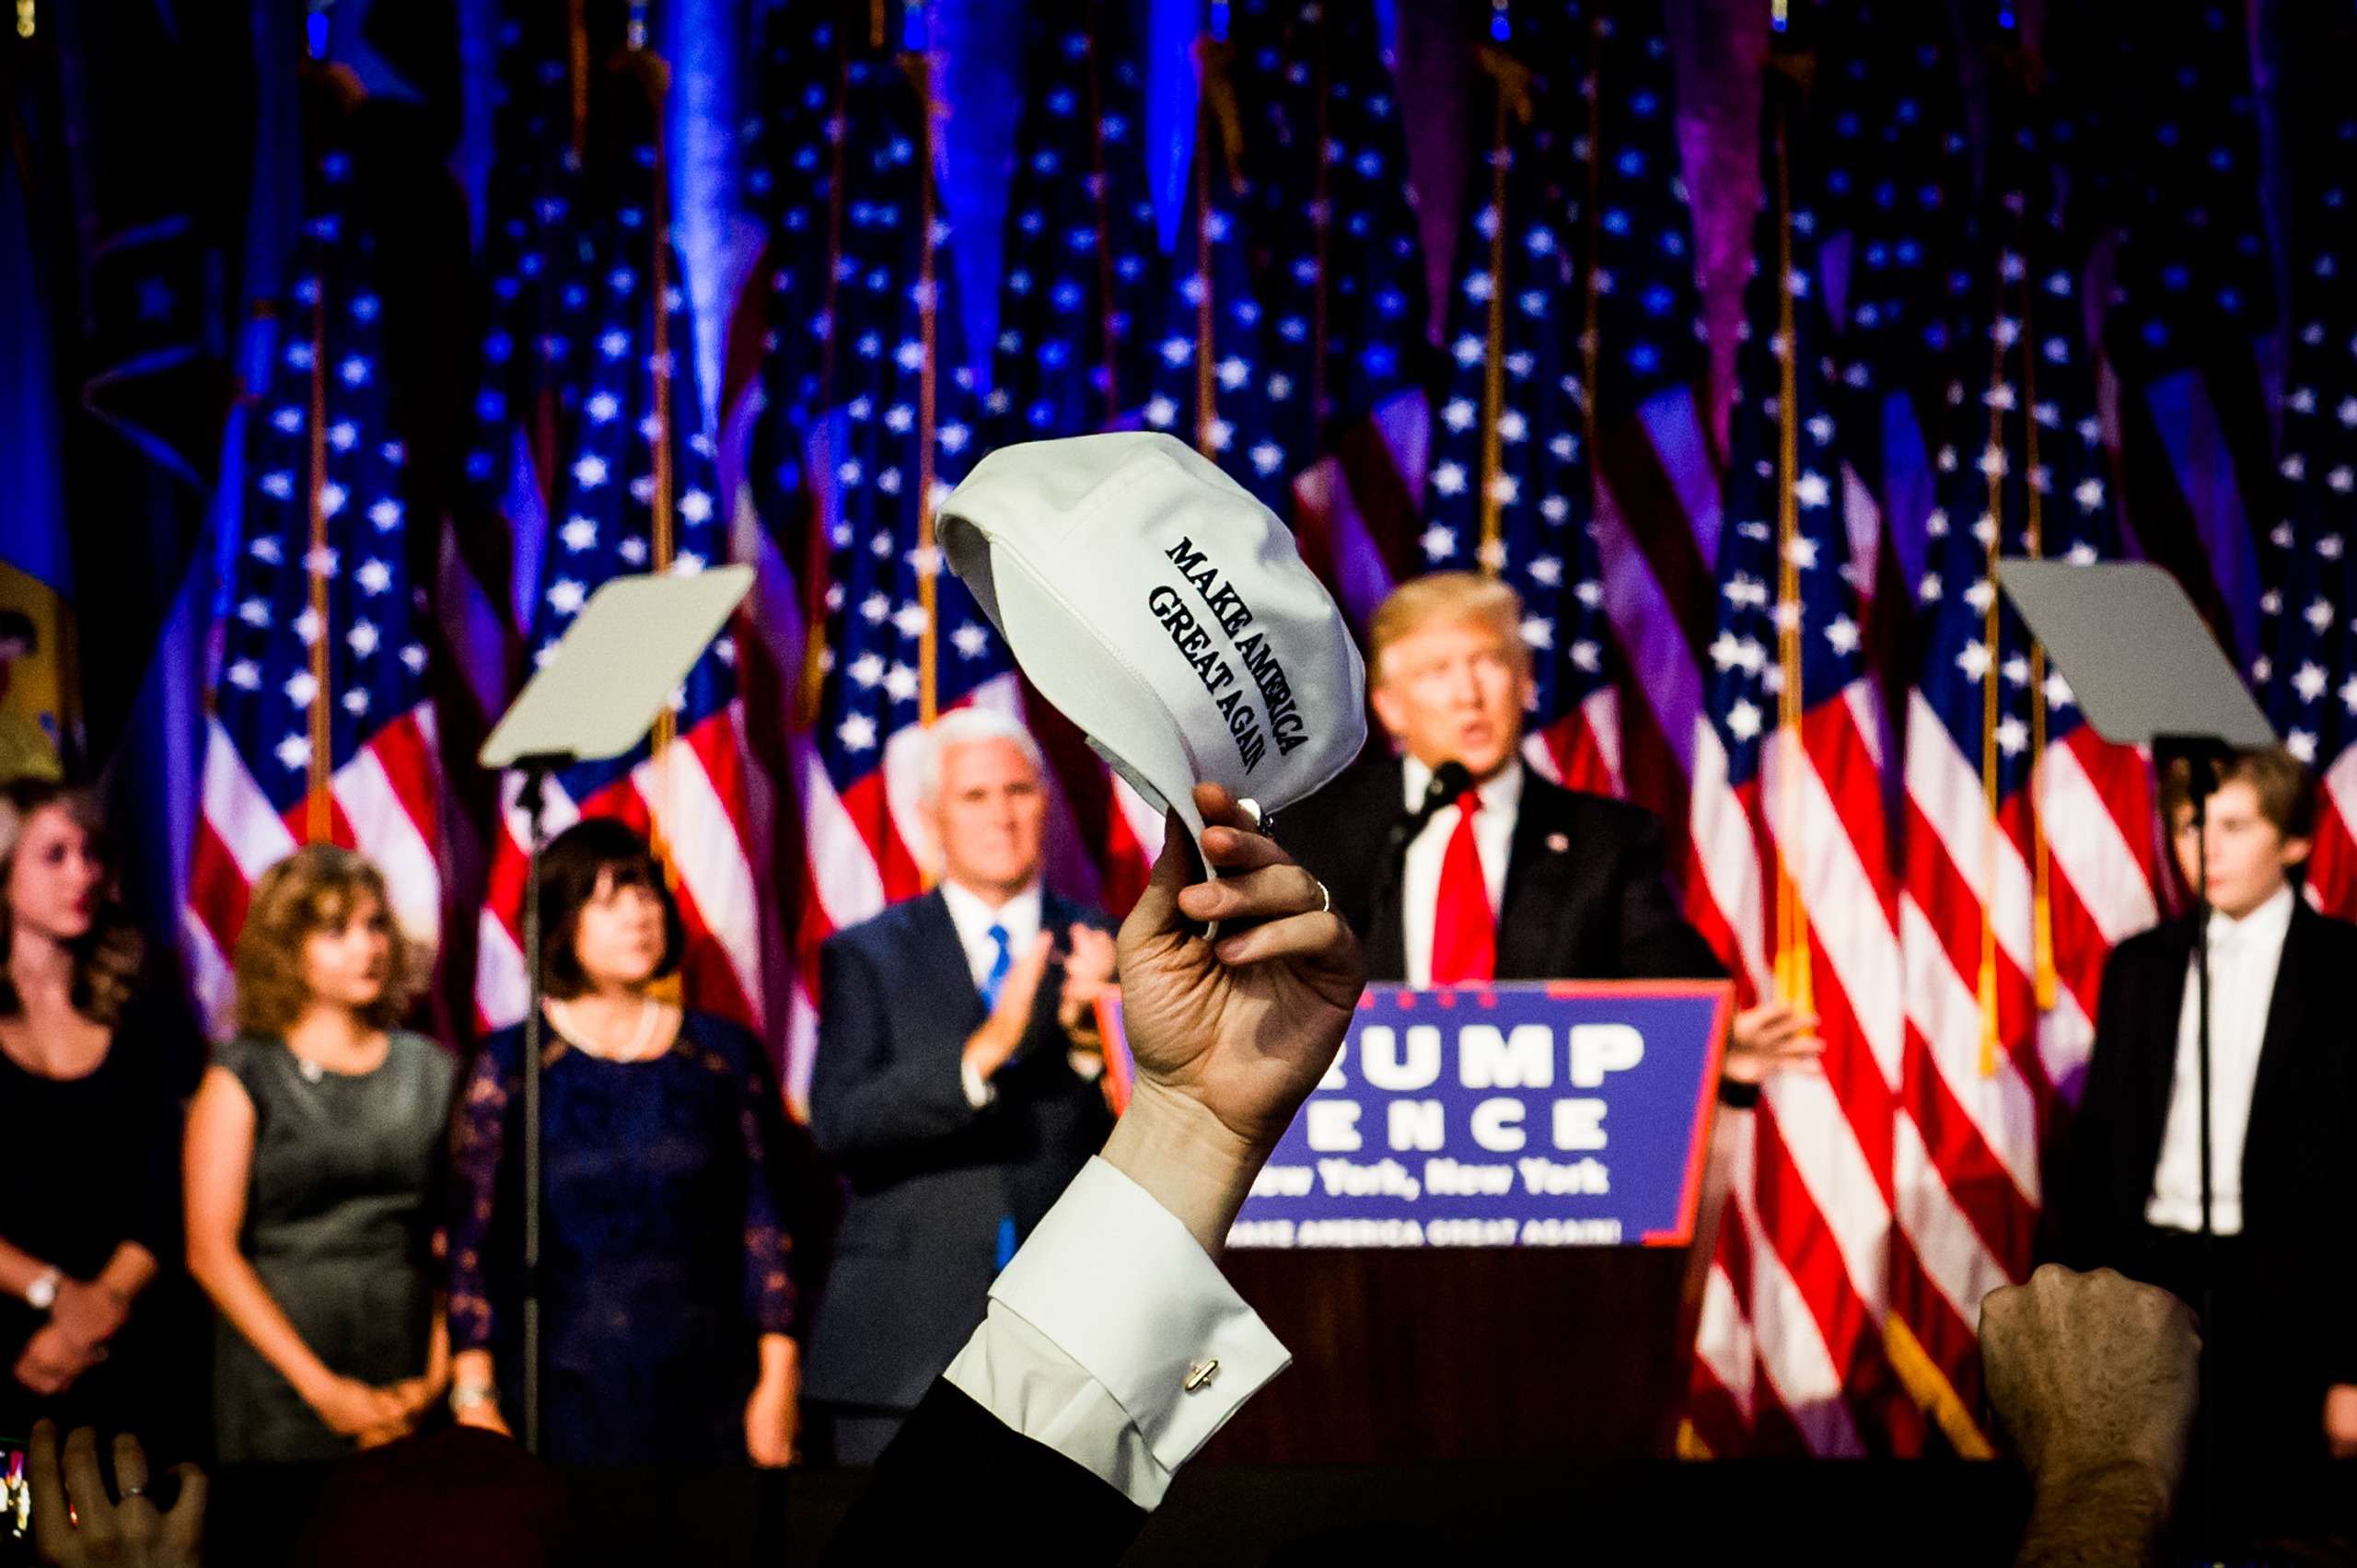 President-elect Donald Trump speaks during his Victory Party on Tuesday, Nov. 8, 2016 in New York's Manhattan borough.From  The 82 Most Unforgettable Photos From the Election